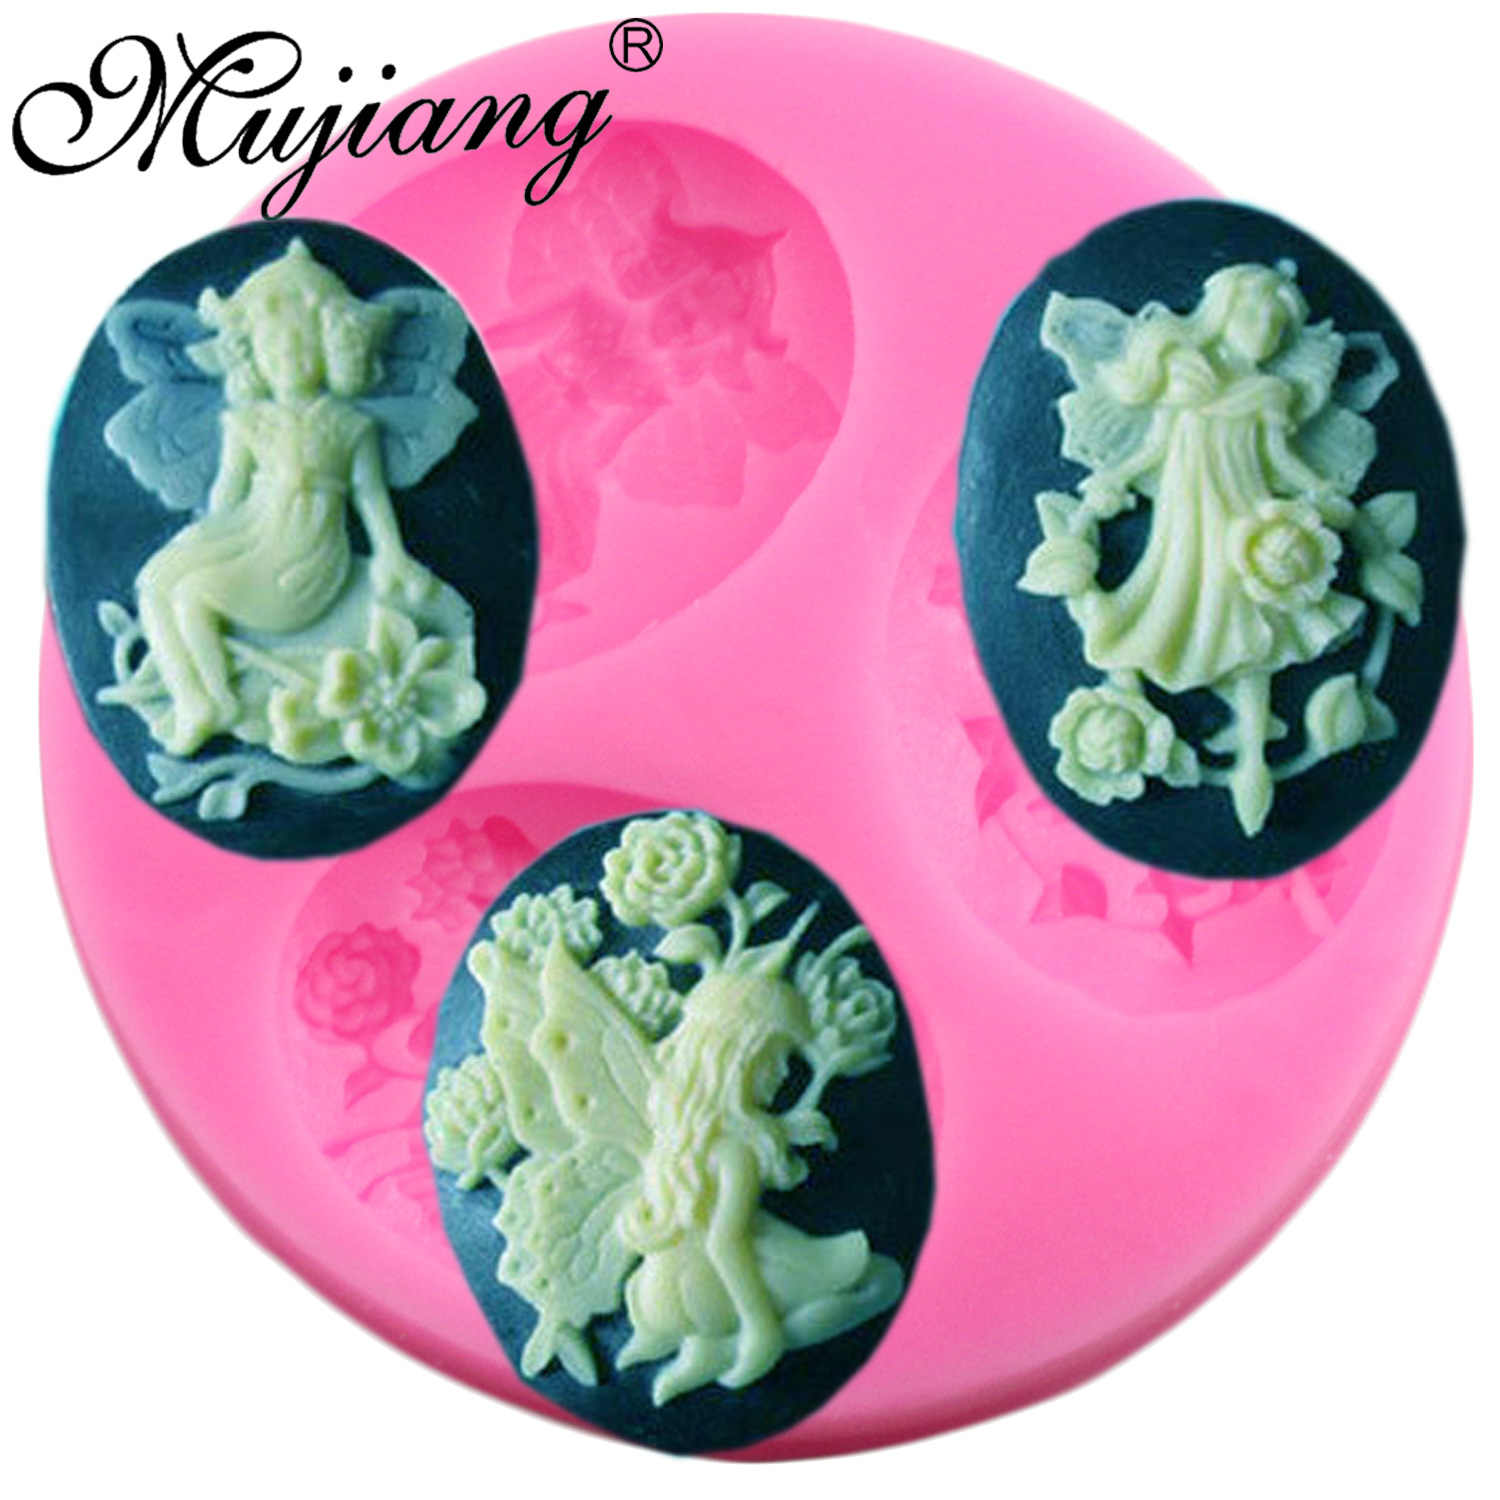 Mujiang Angel Fairy Silicone Fondant Molds Sugarcraft Party Cake Decorating Tools Candy Fimo Clay Chocolate Gumpaste Moulds